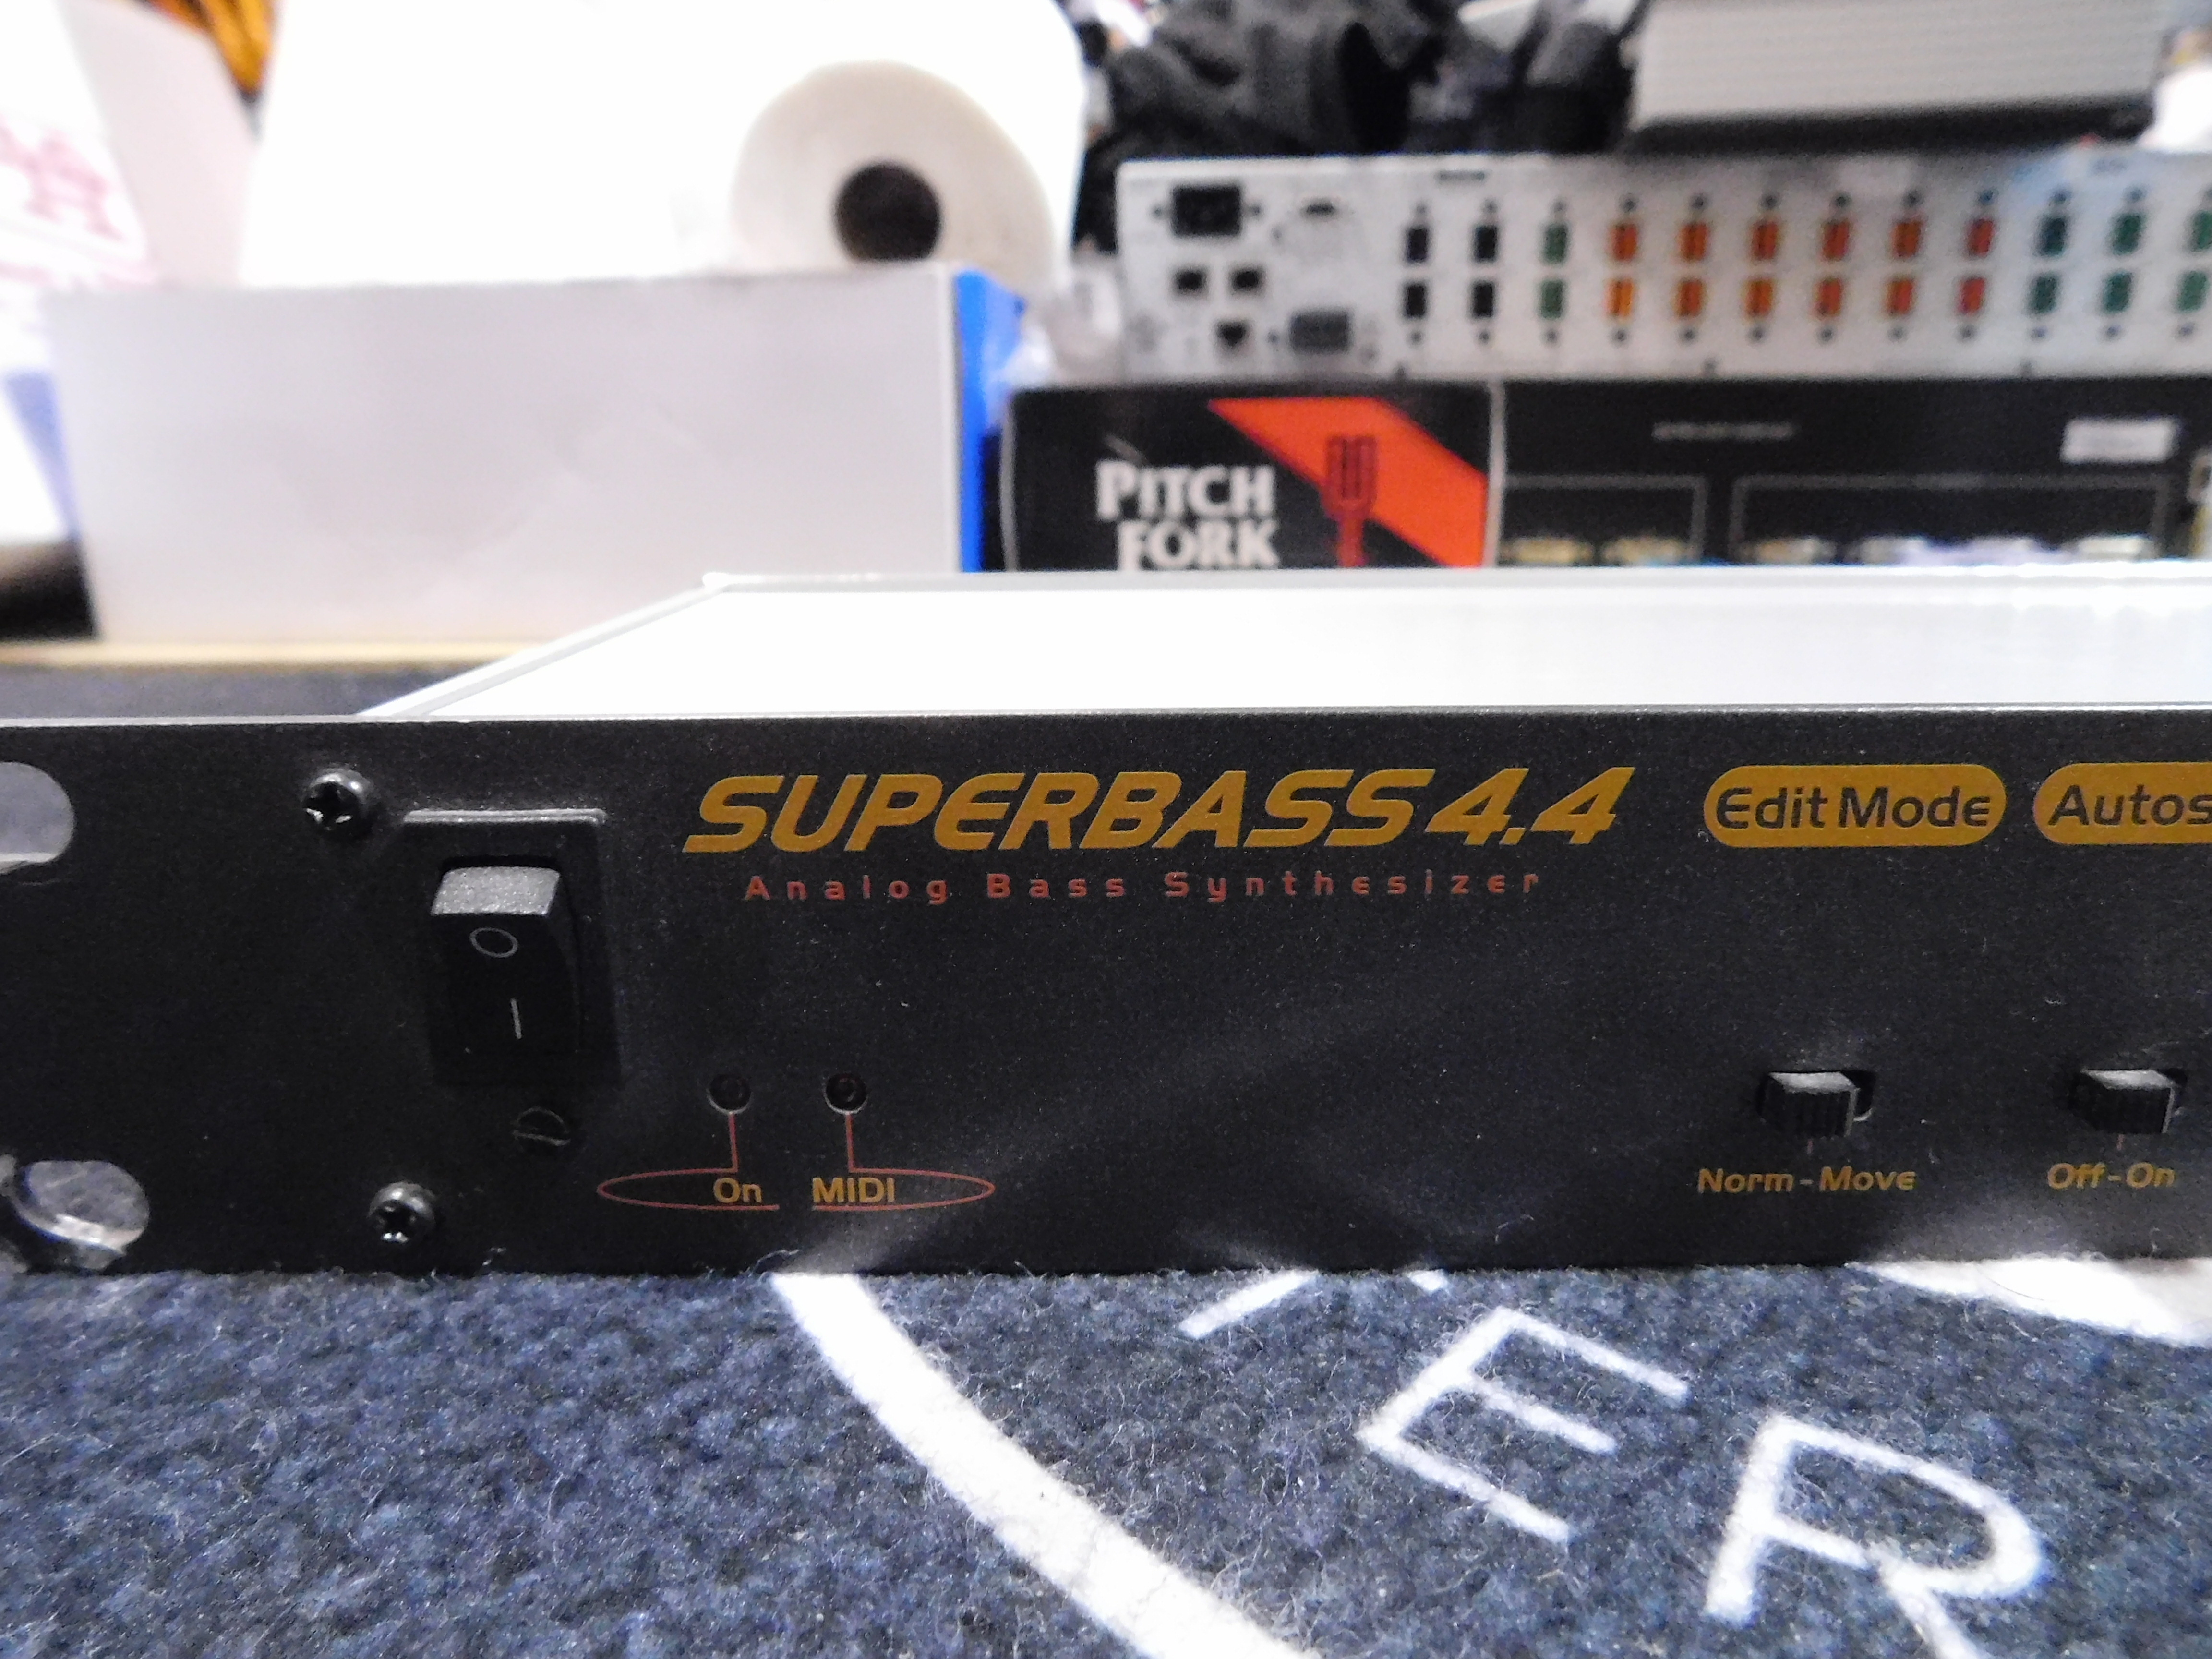 NEXT! SUPERBASS 4.4 Analog Bass Synthesizer *TB-303 Clone* with Power Supply!